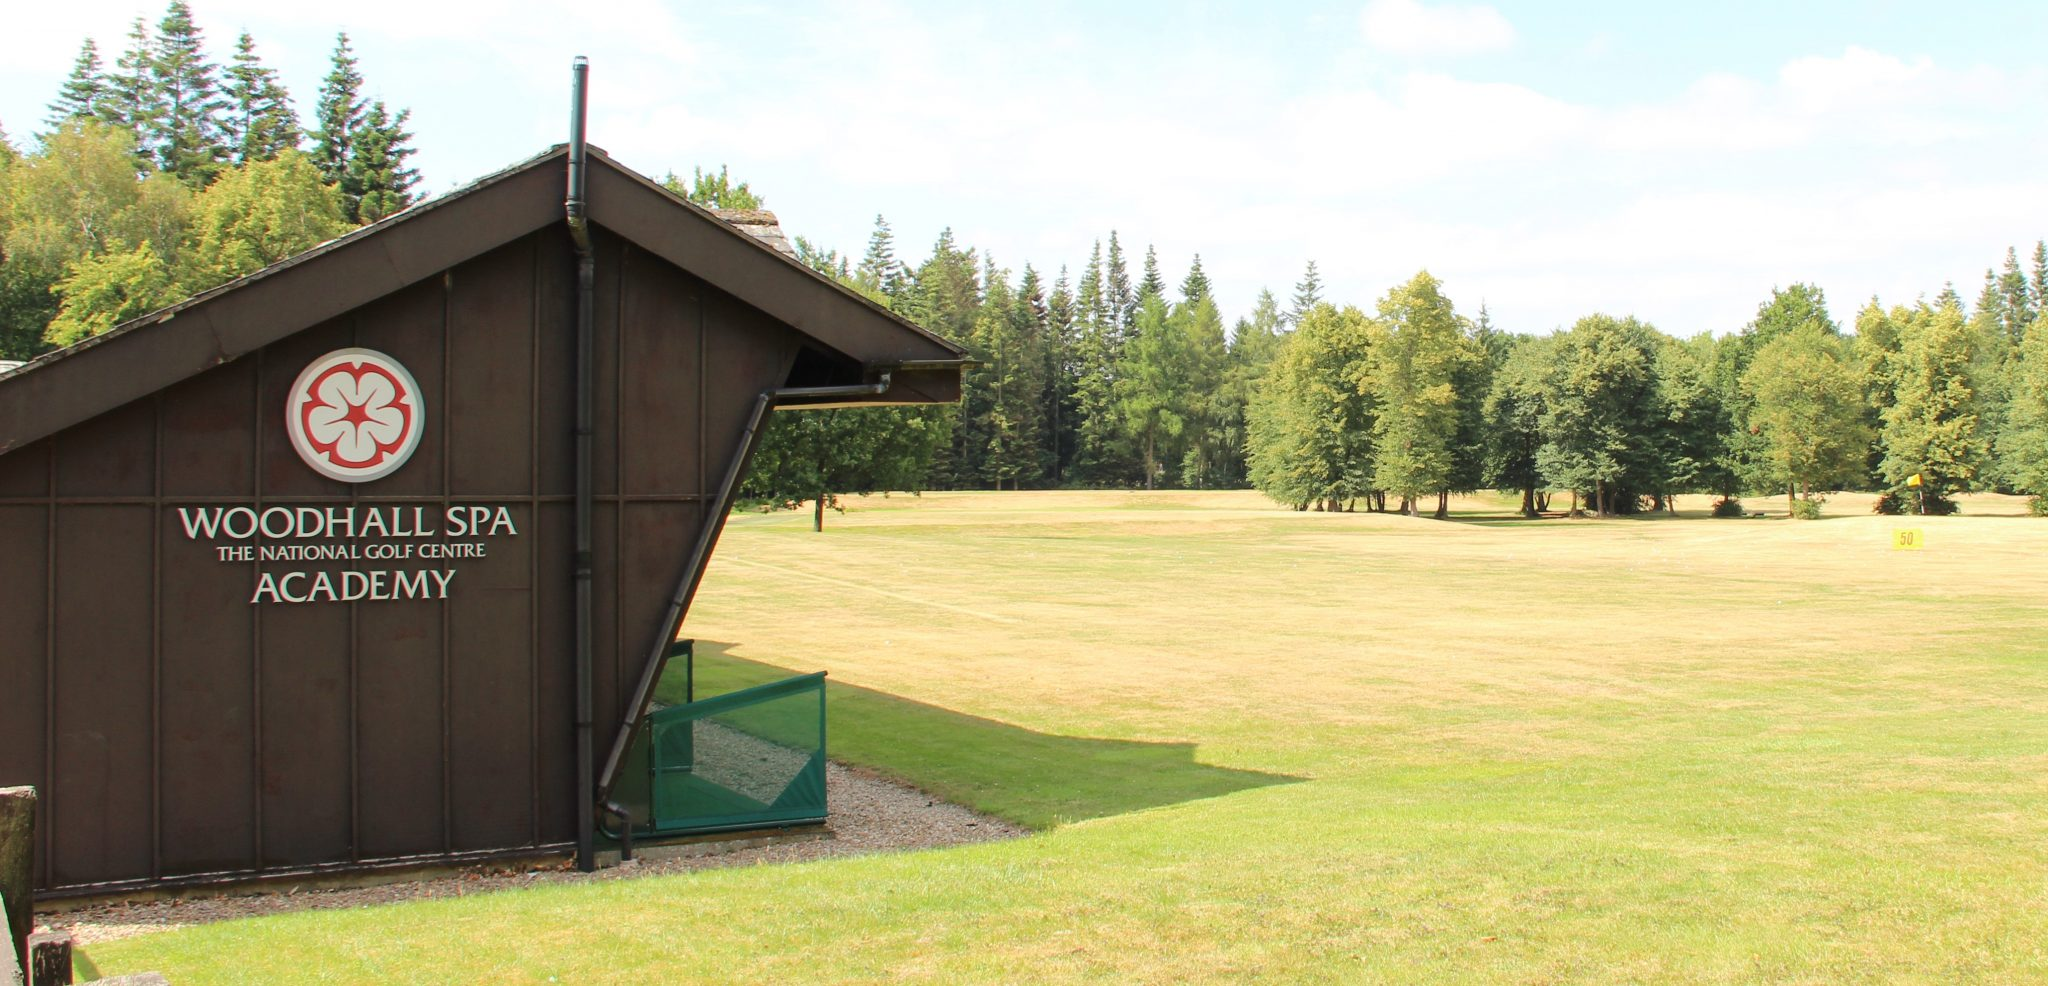 New: Update on re-opening driving ranges and club fitting